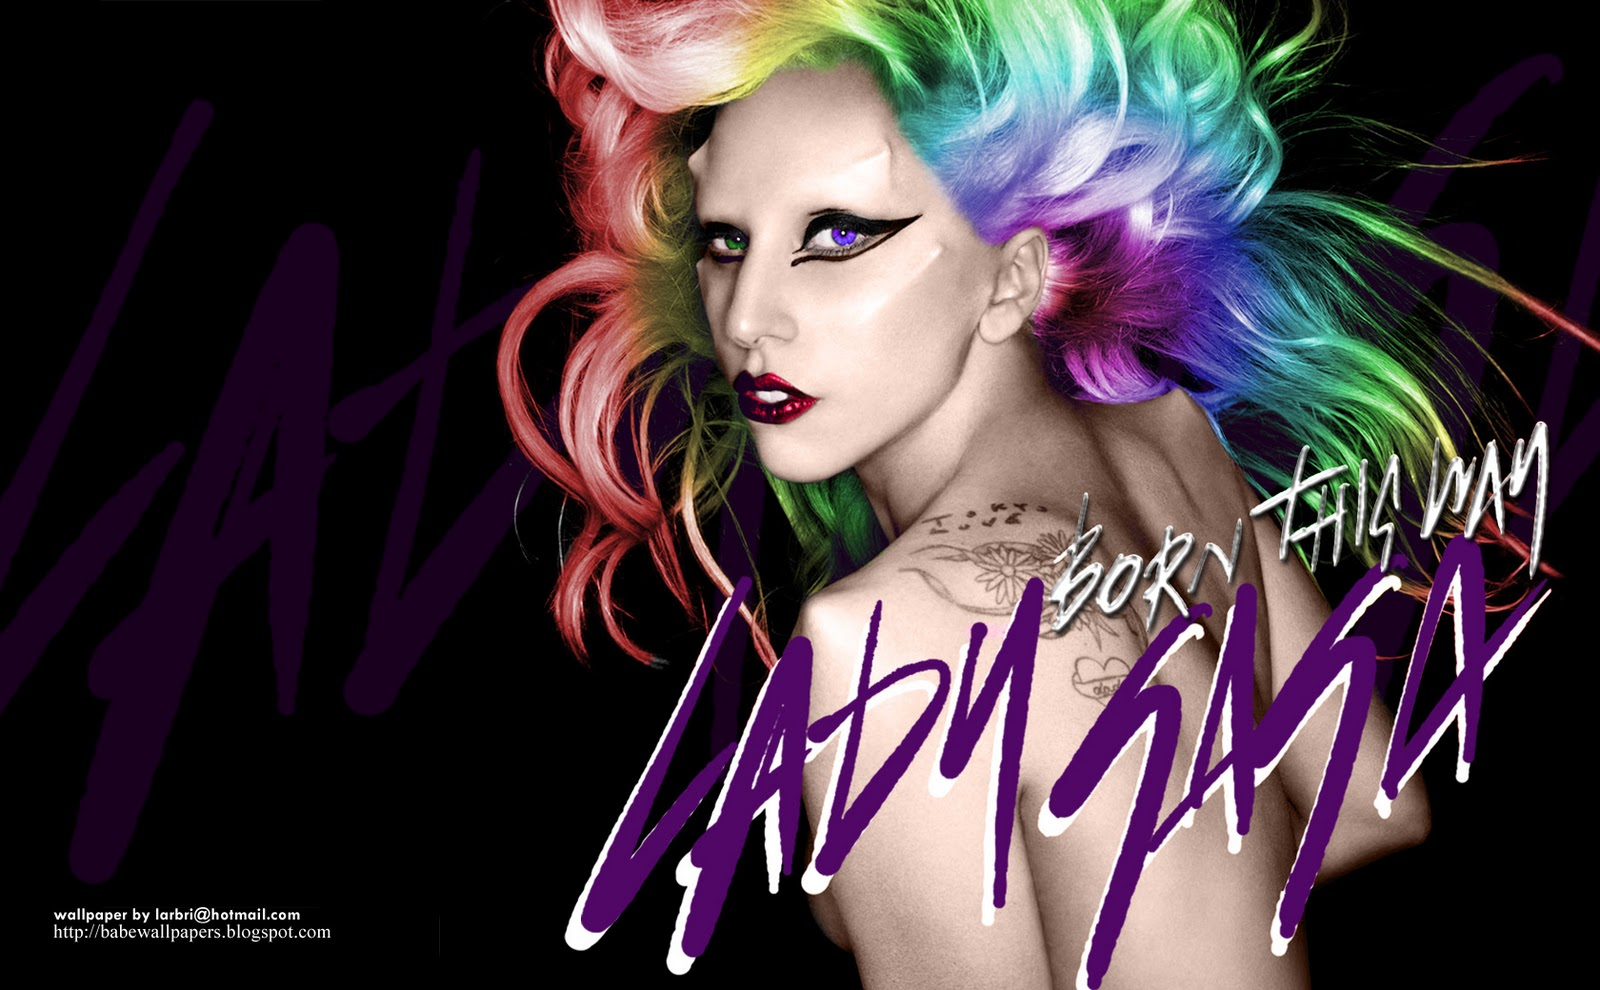 Click To See World: Lady gaga wallpaper born this way